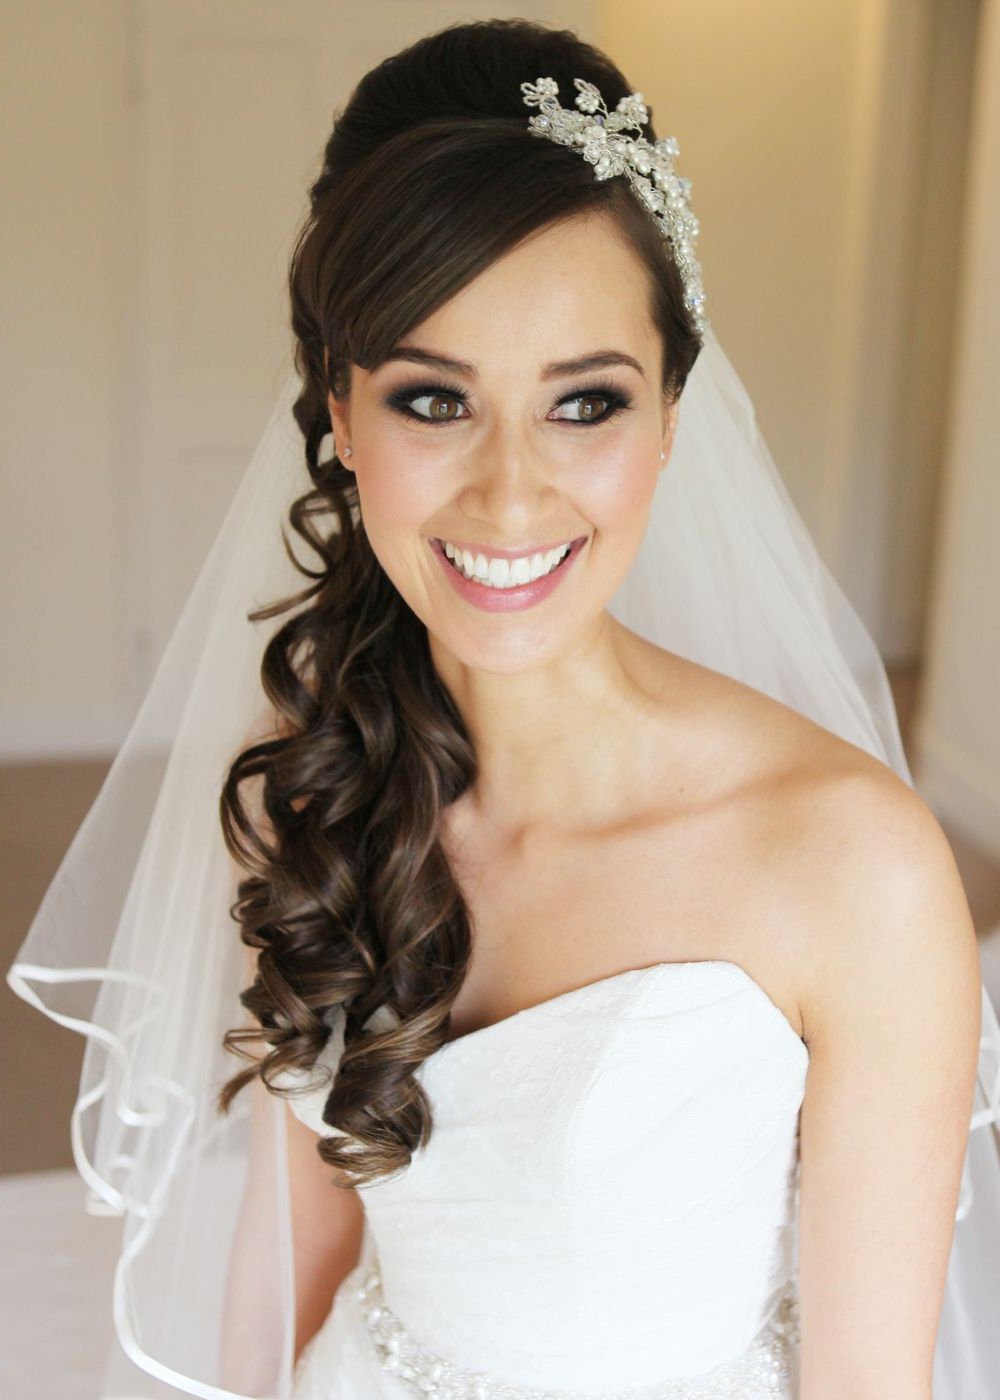 15 Fabulous Half Up Half Down Wedding Hairstyles (View 3 of 20)